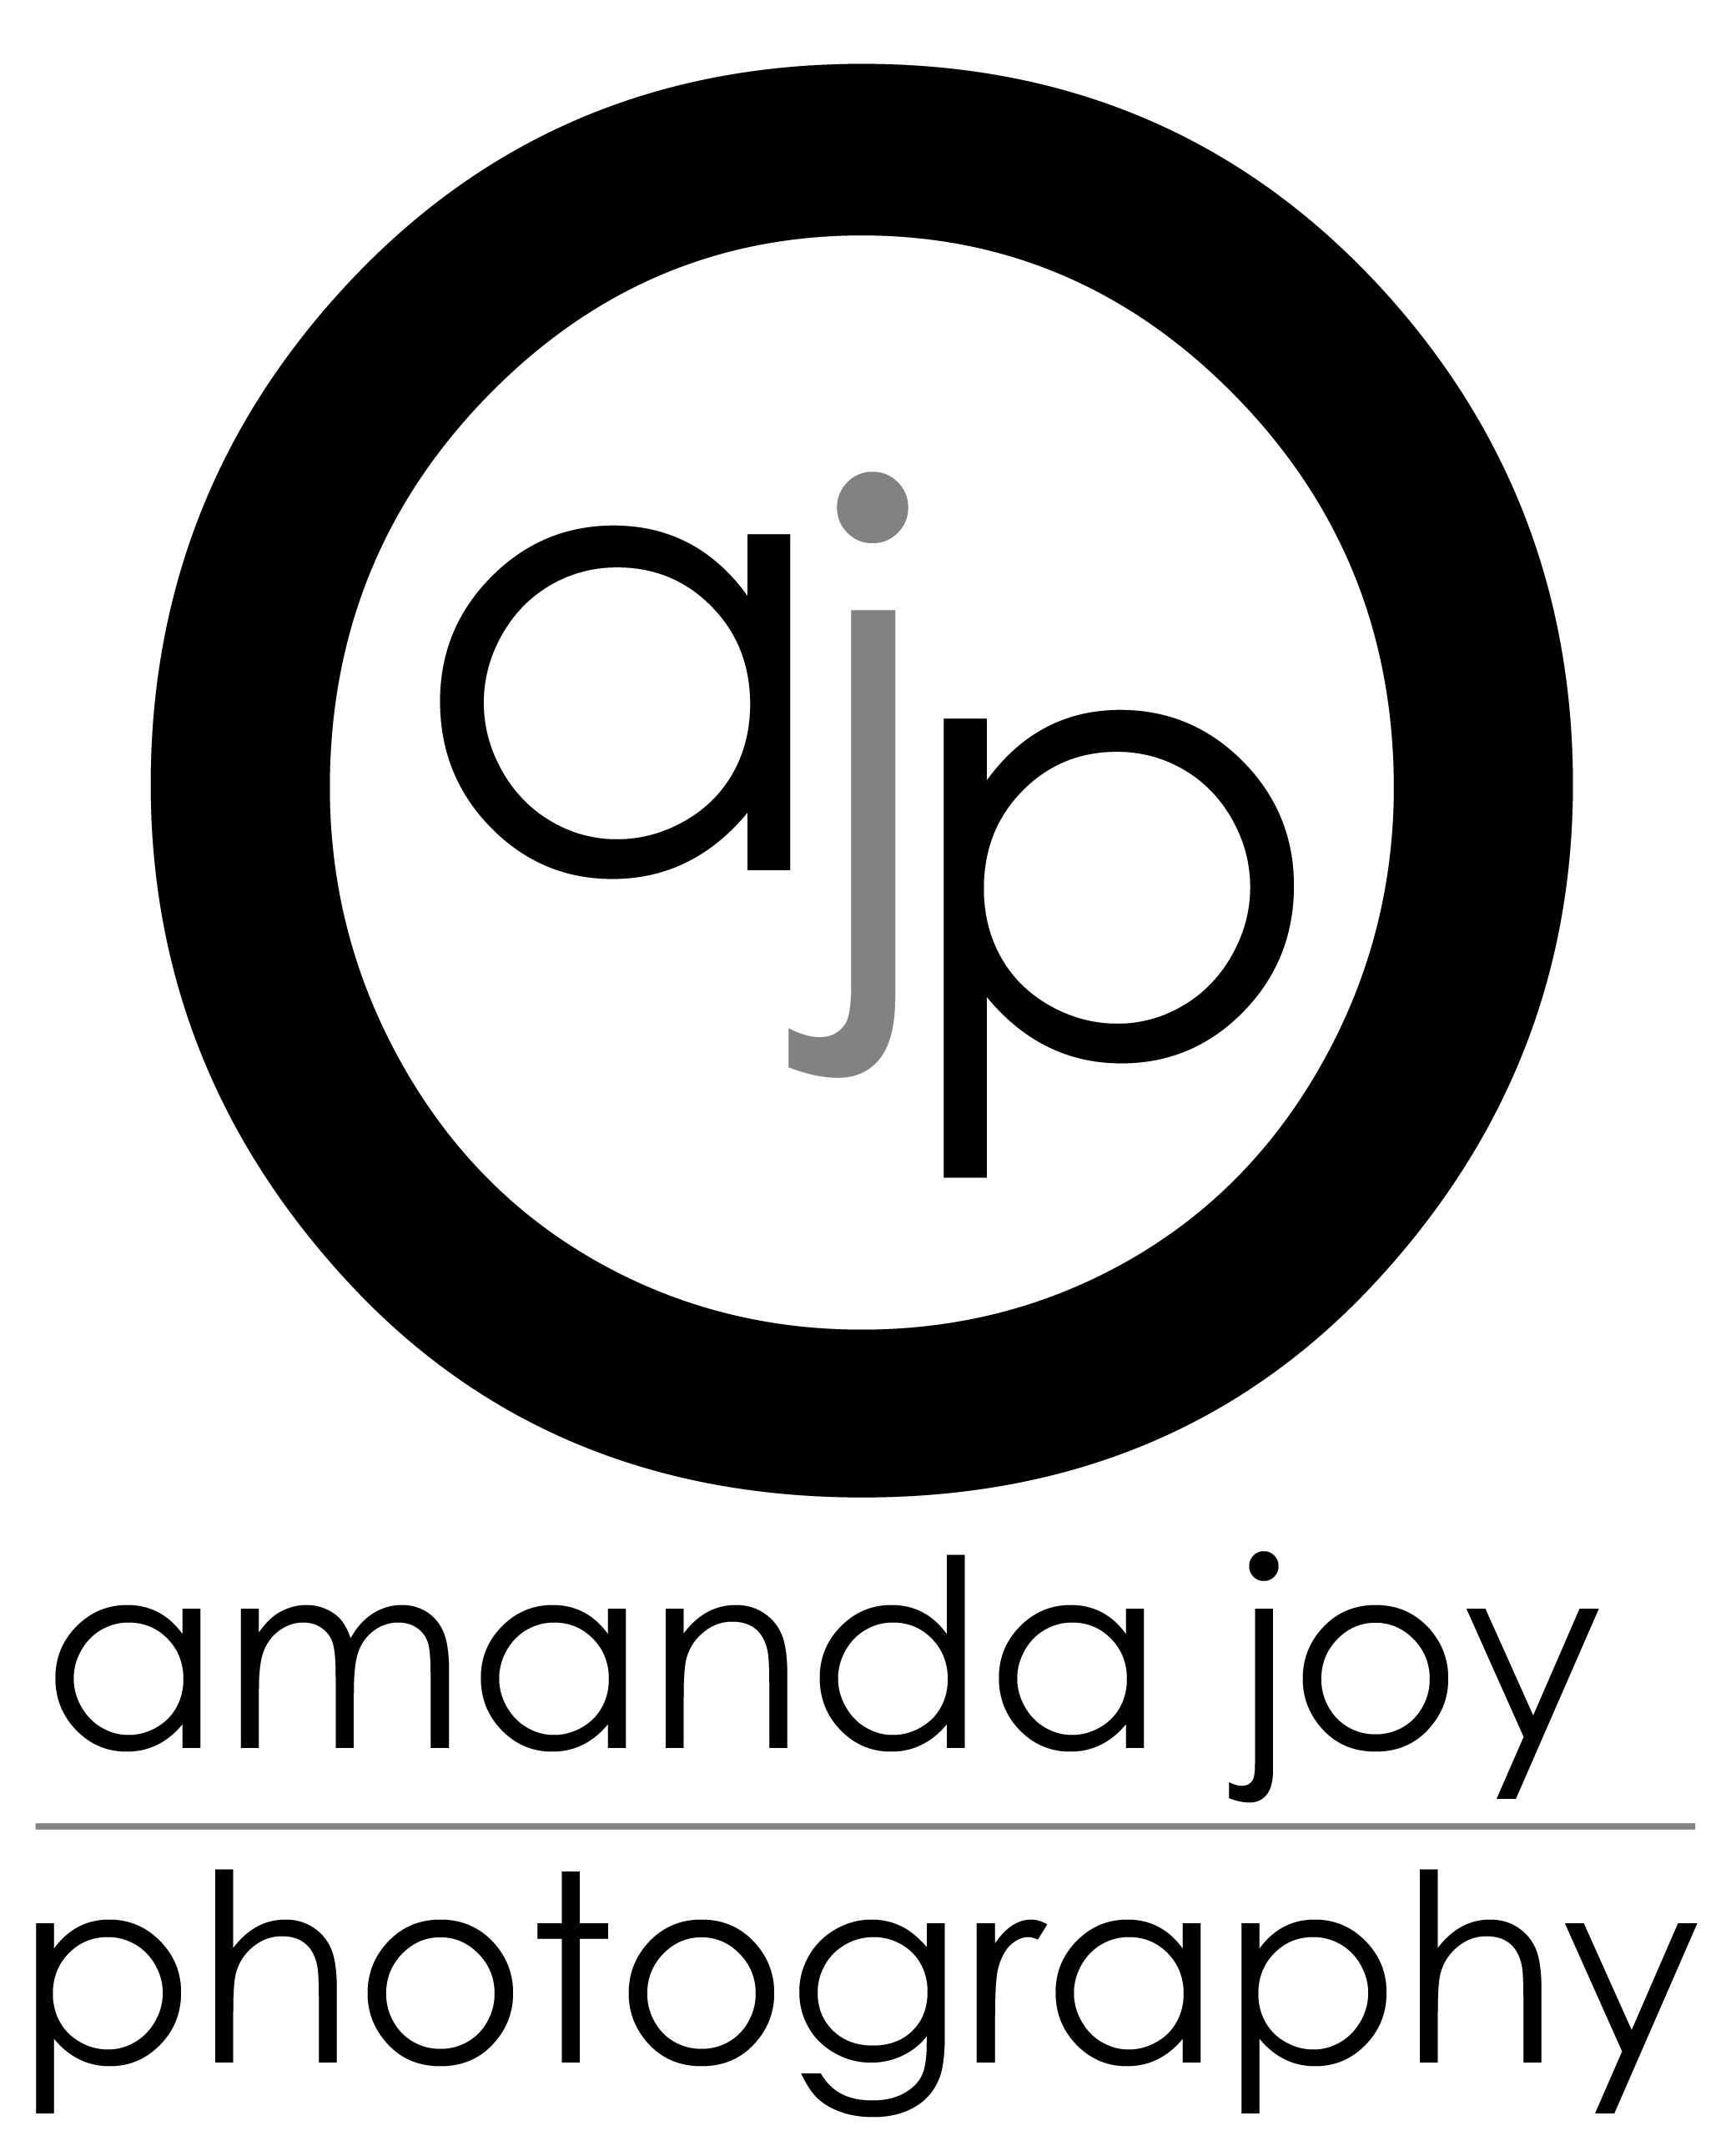 Amanda Joy Photography